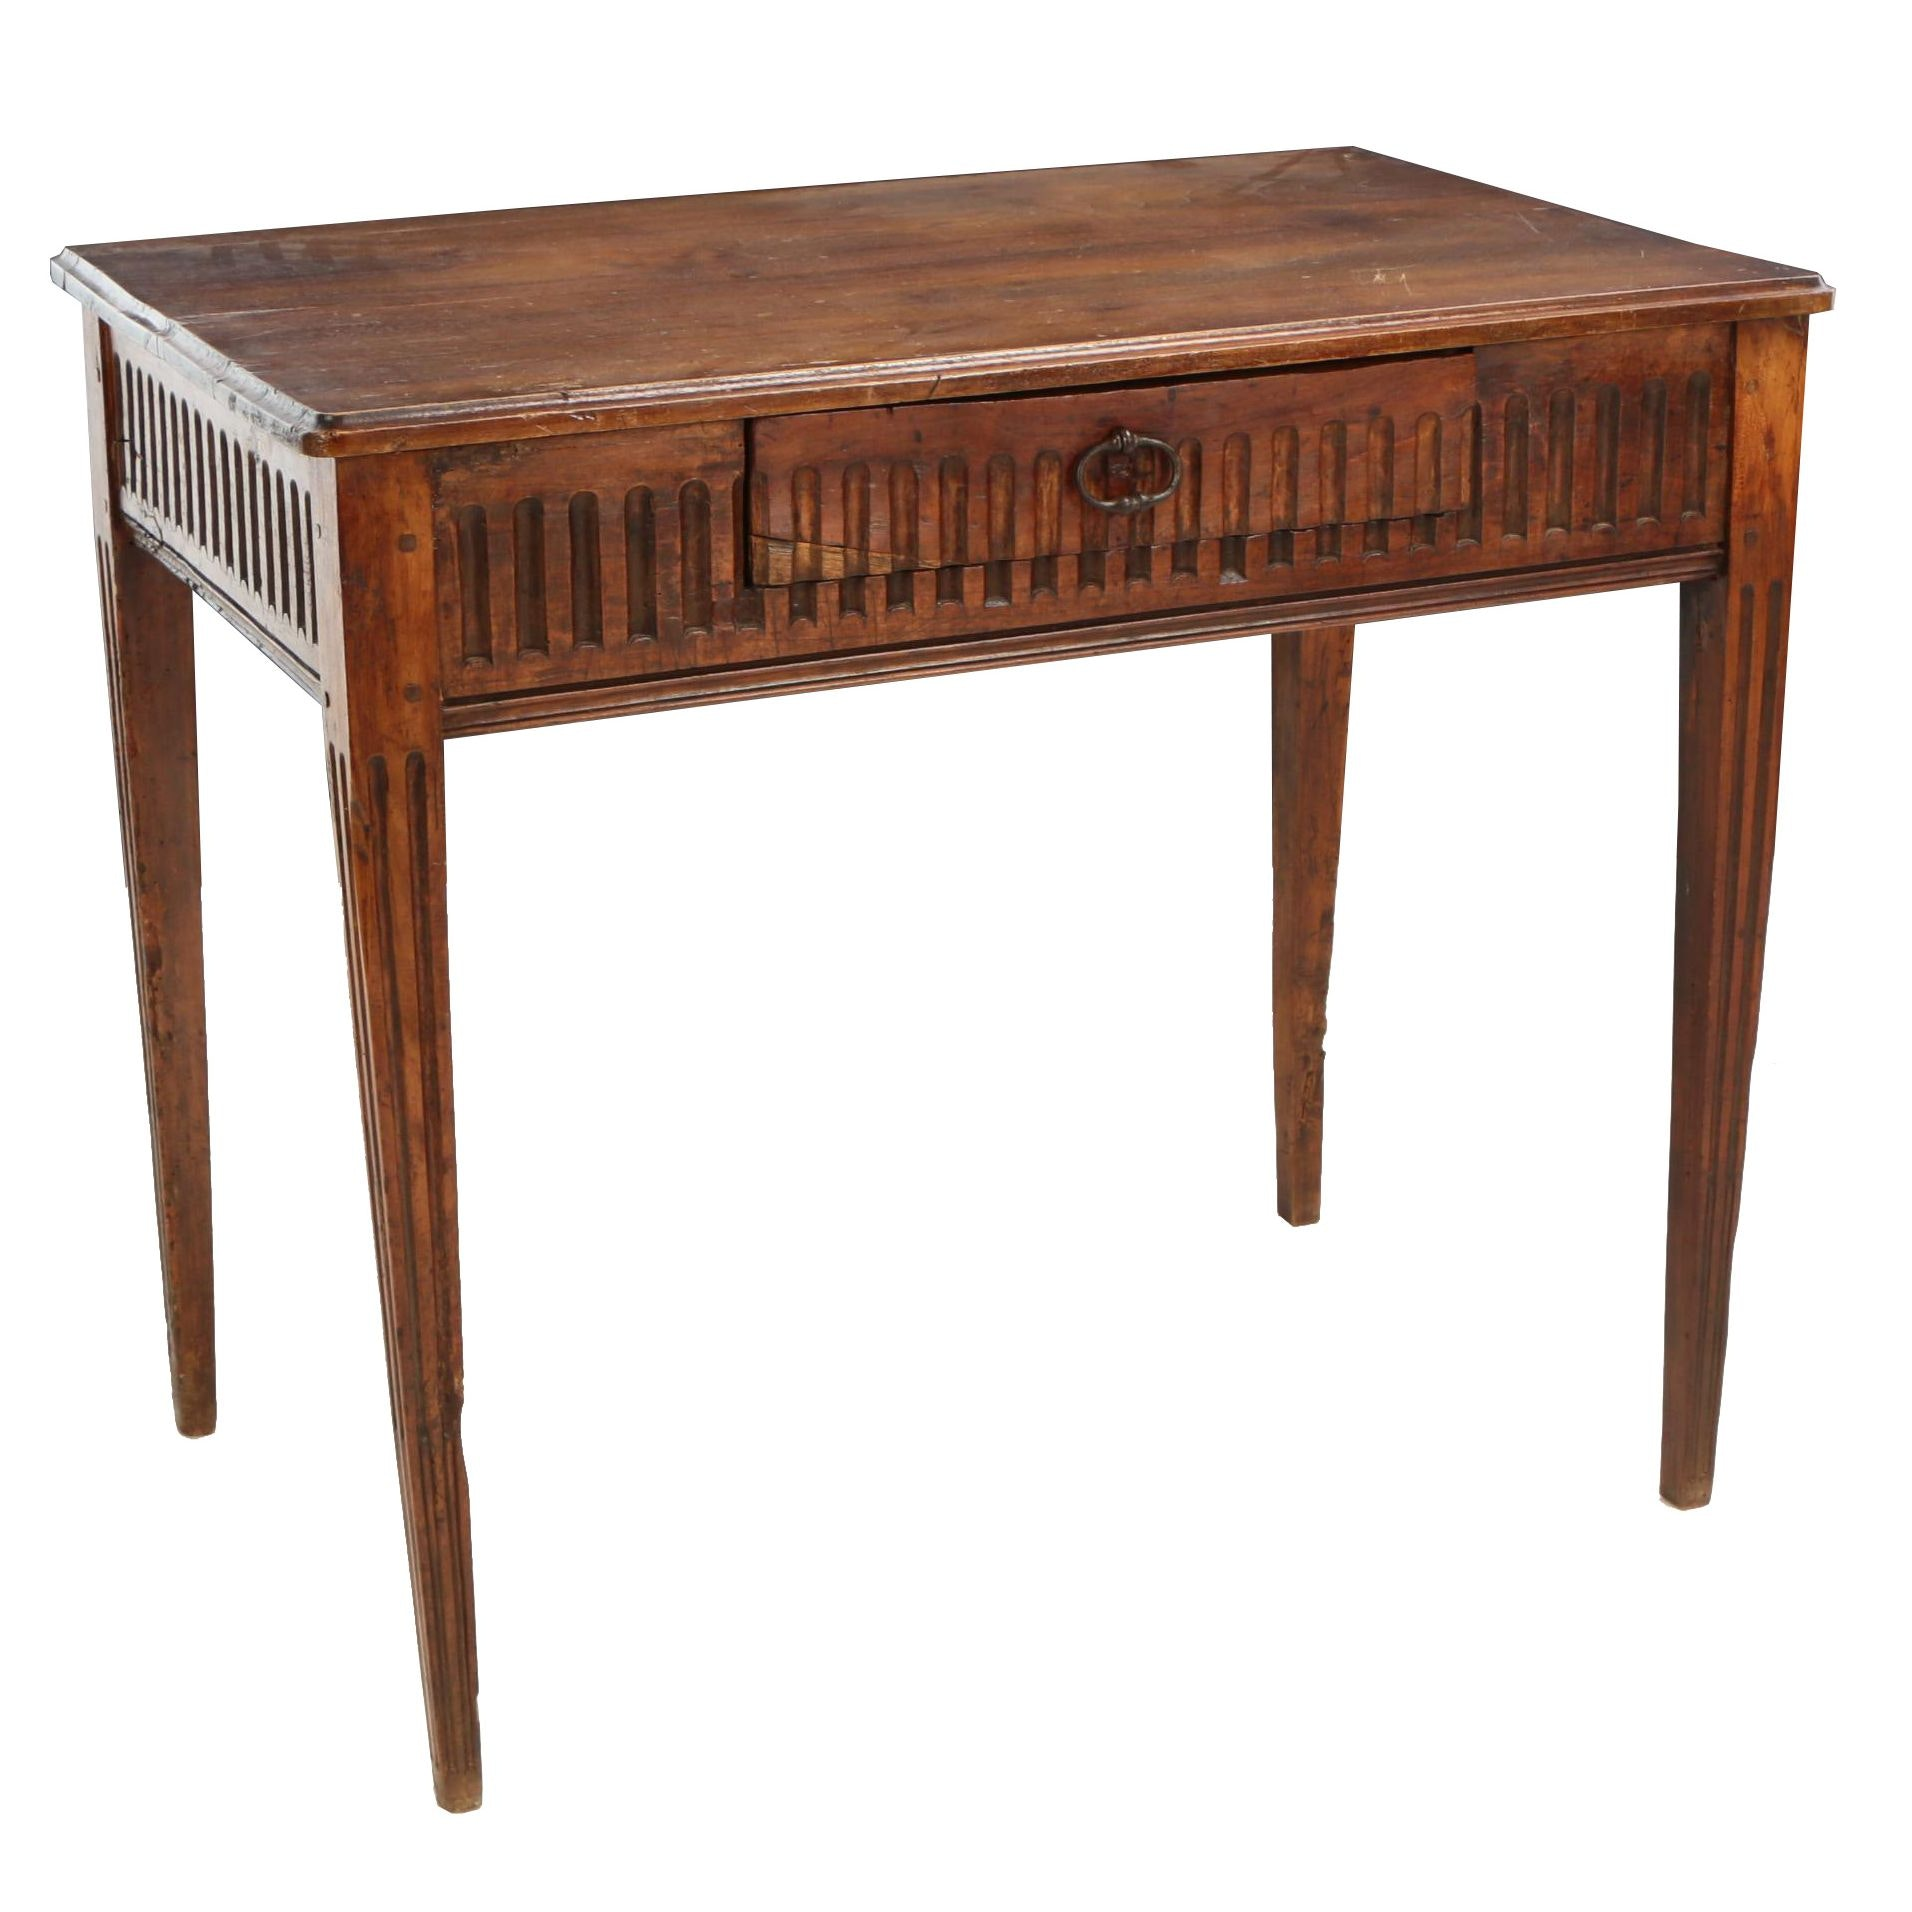 Provincial Carved Fruitwood and Walnut Side Table, Late 18th/Early 19th Century